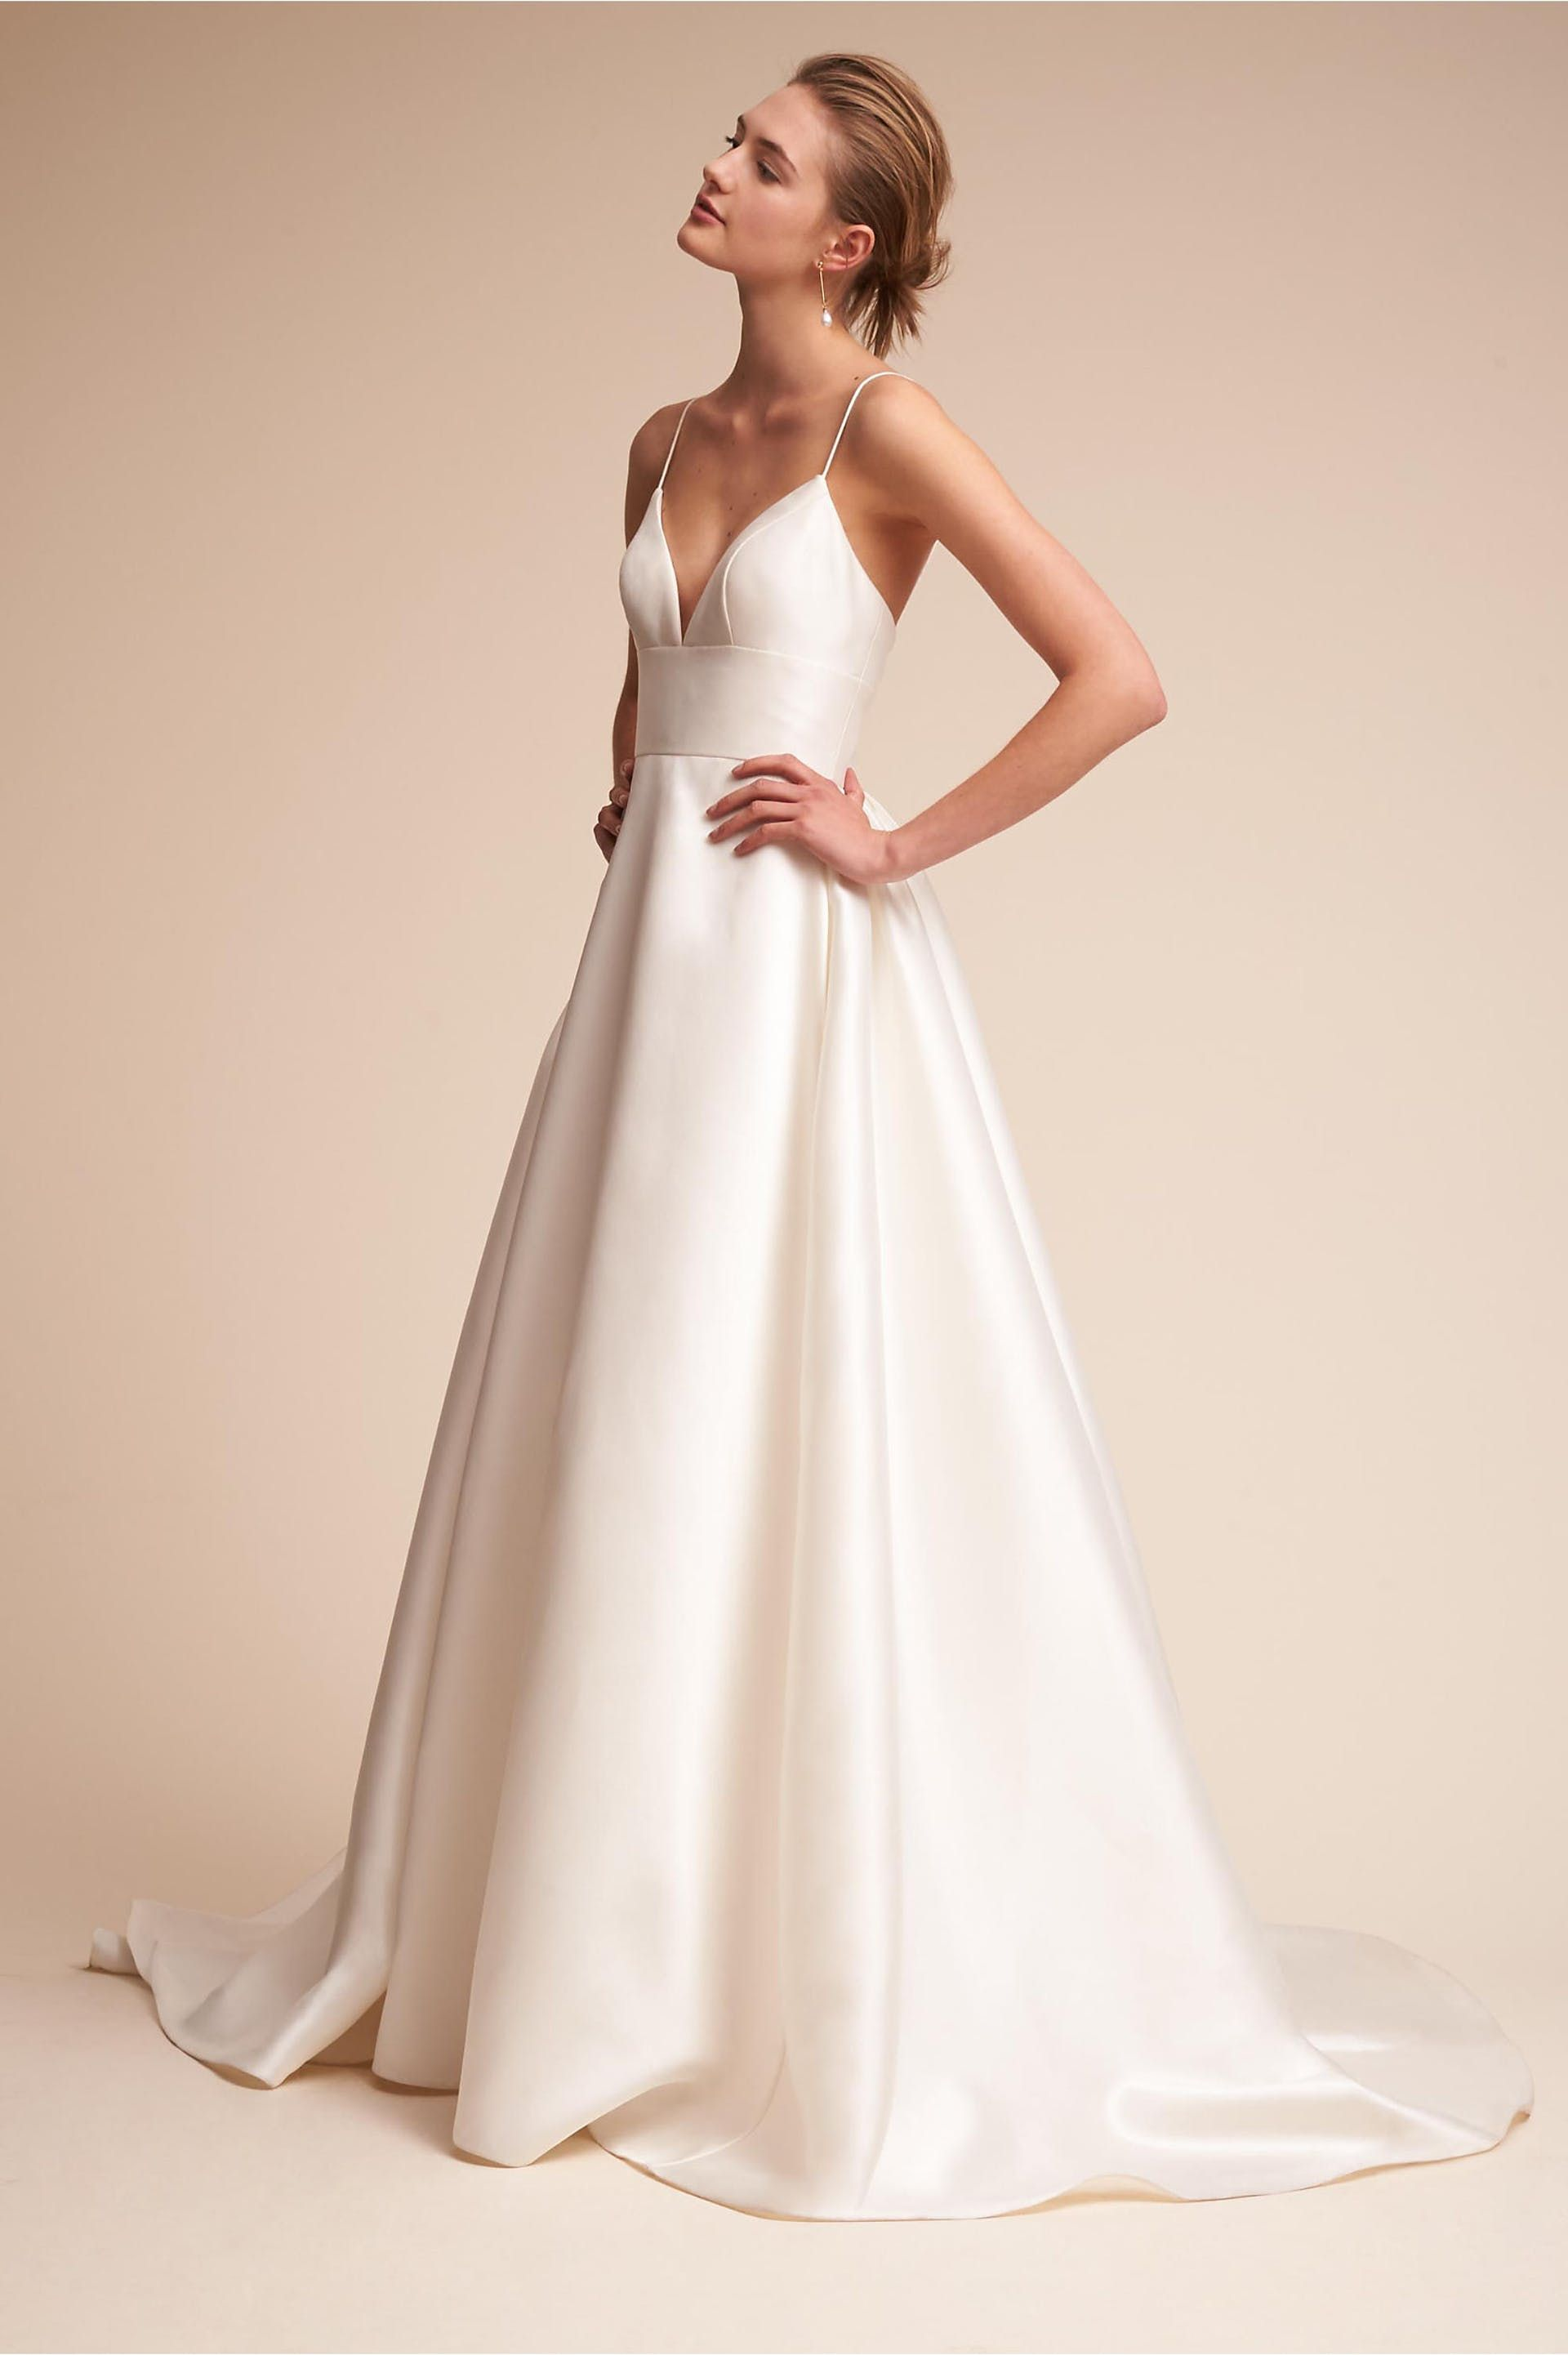 beautiful wedding dresses that are affordable and cost under